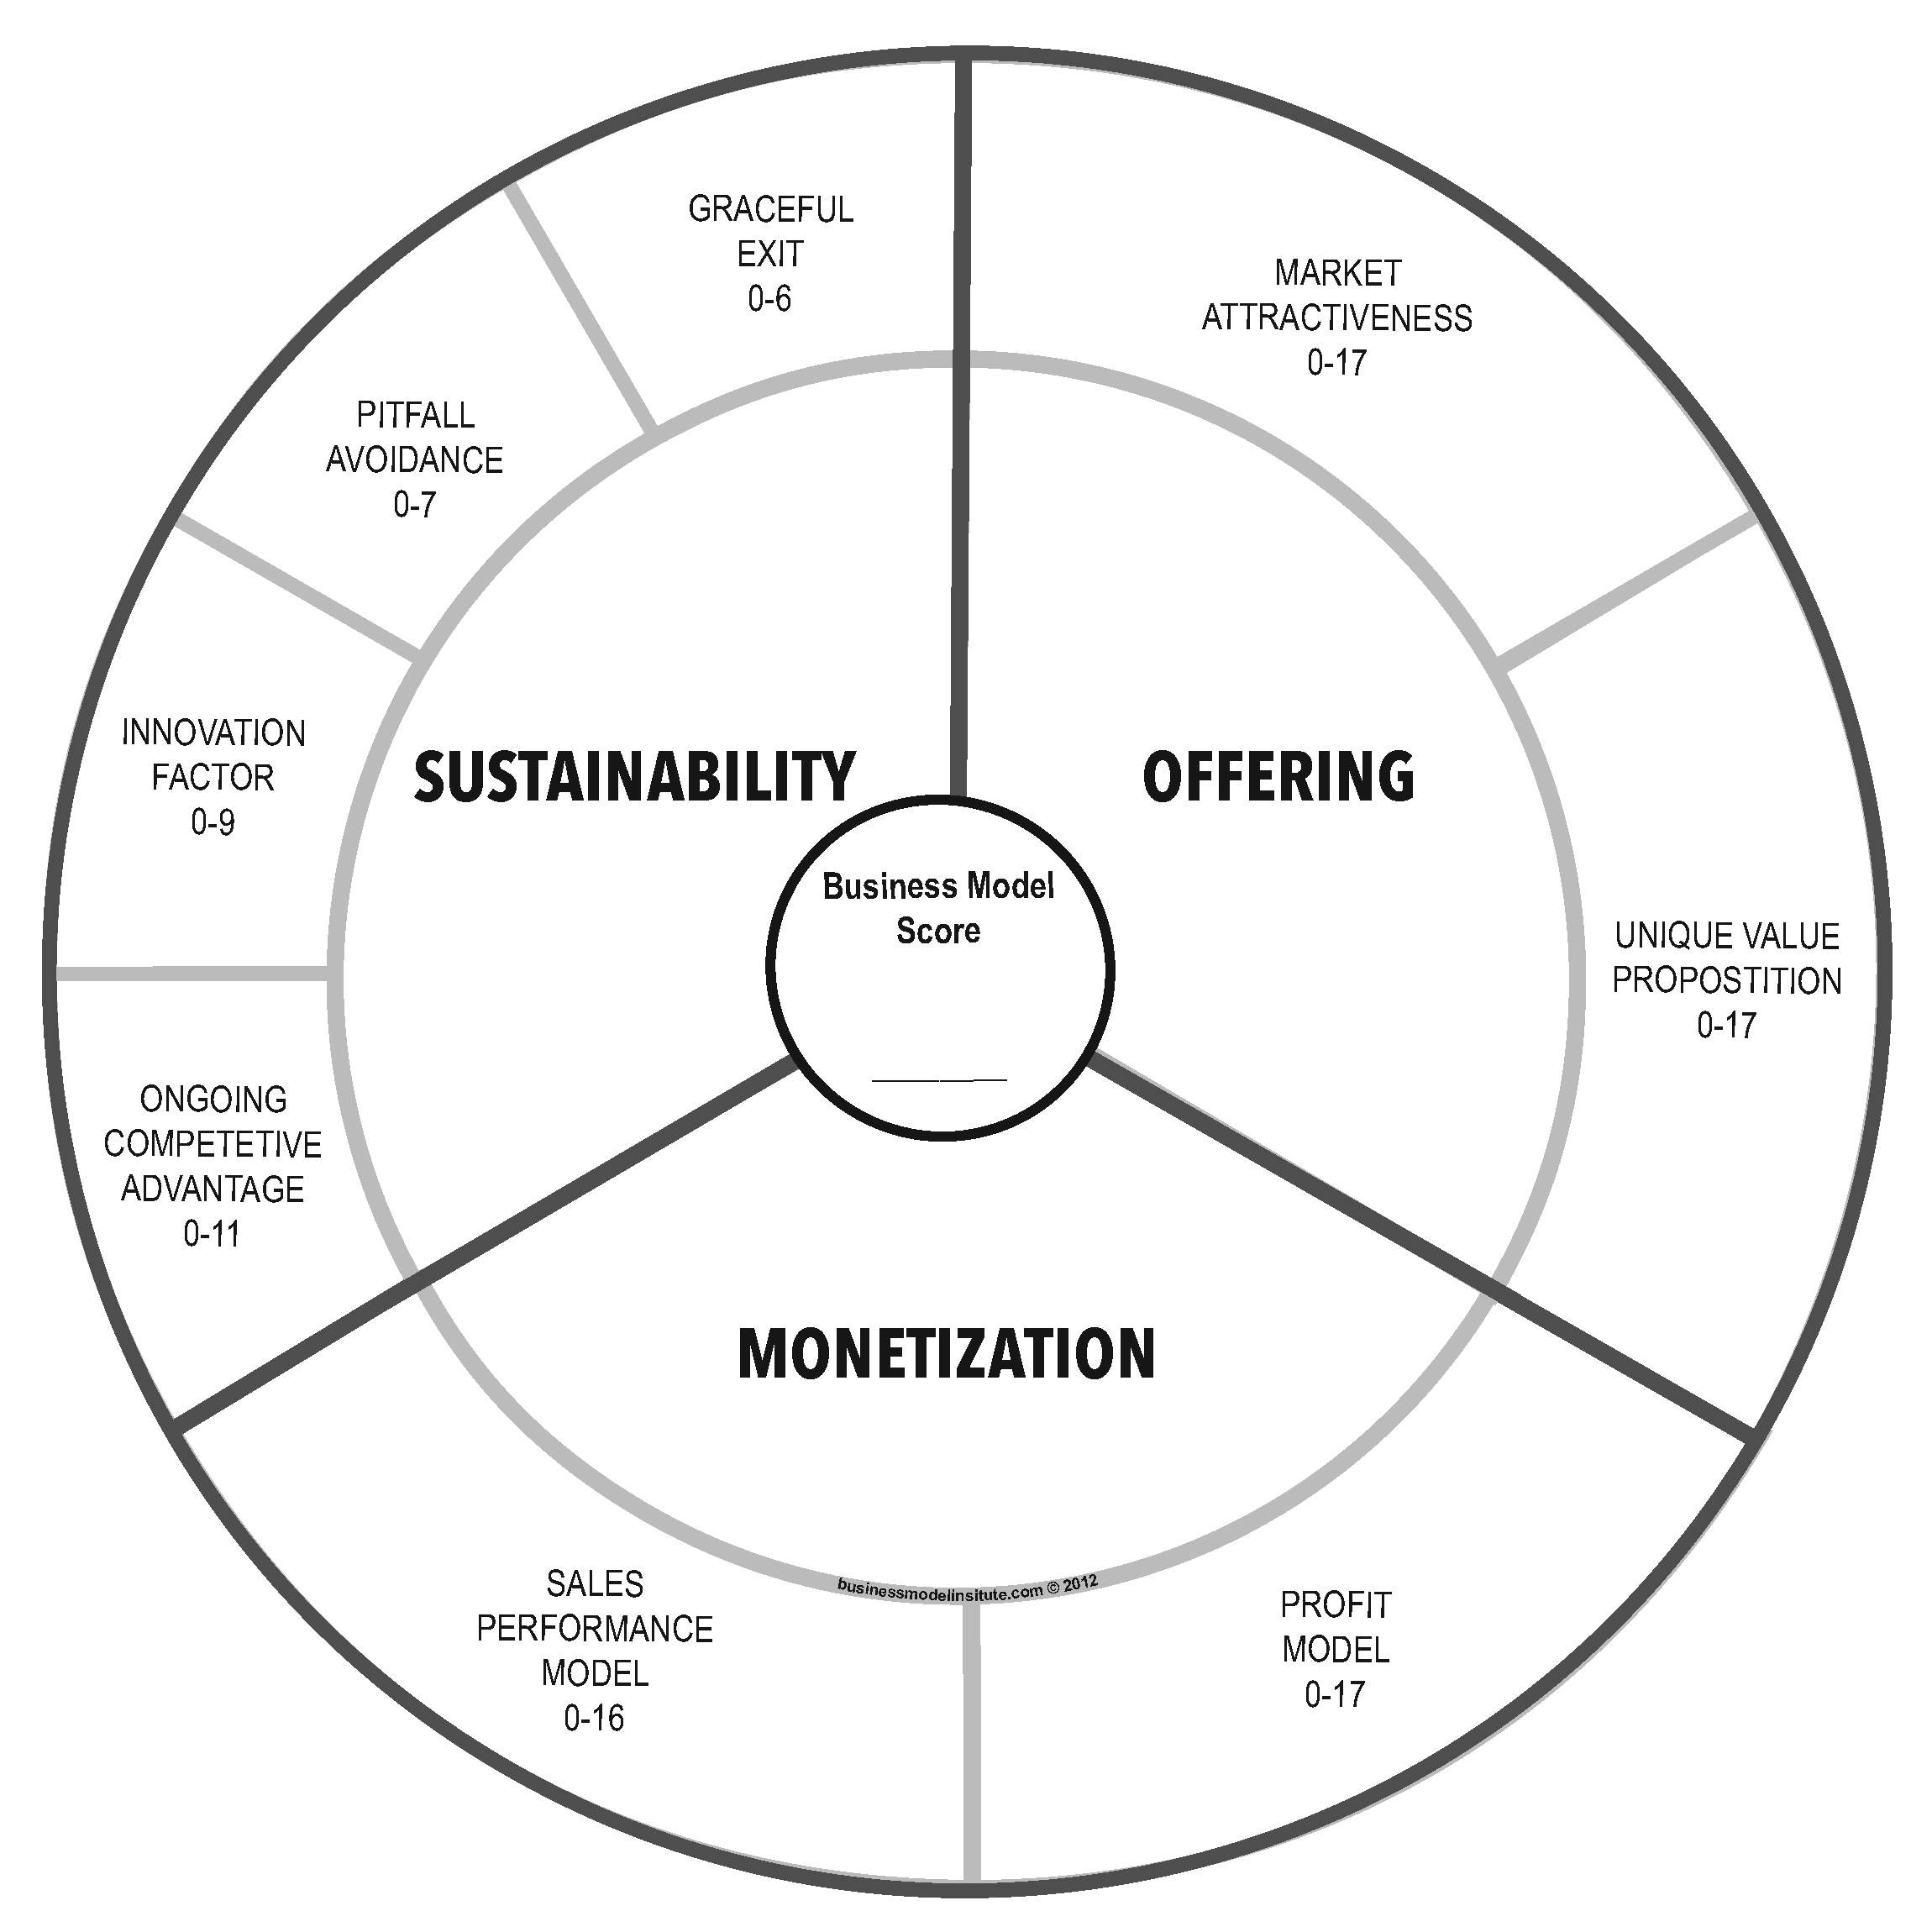 article review why business models matter Harvard business review 86, no 12 (december 2008).